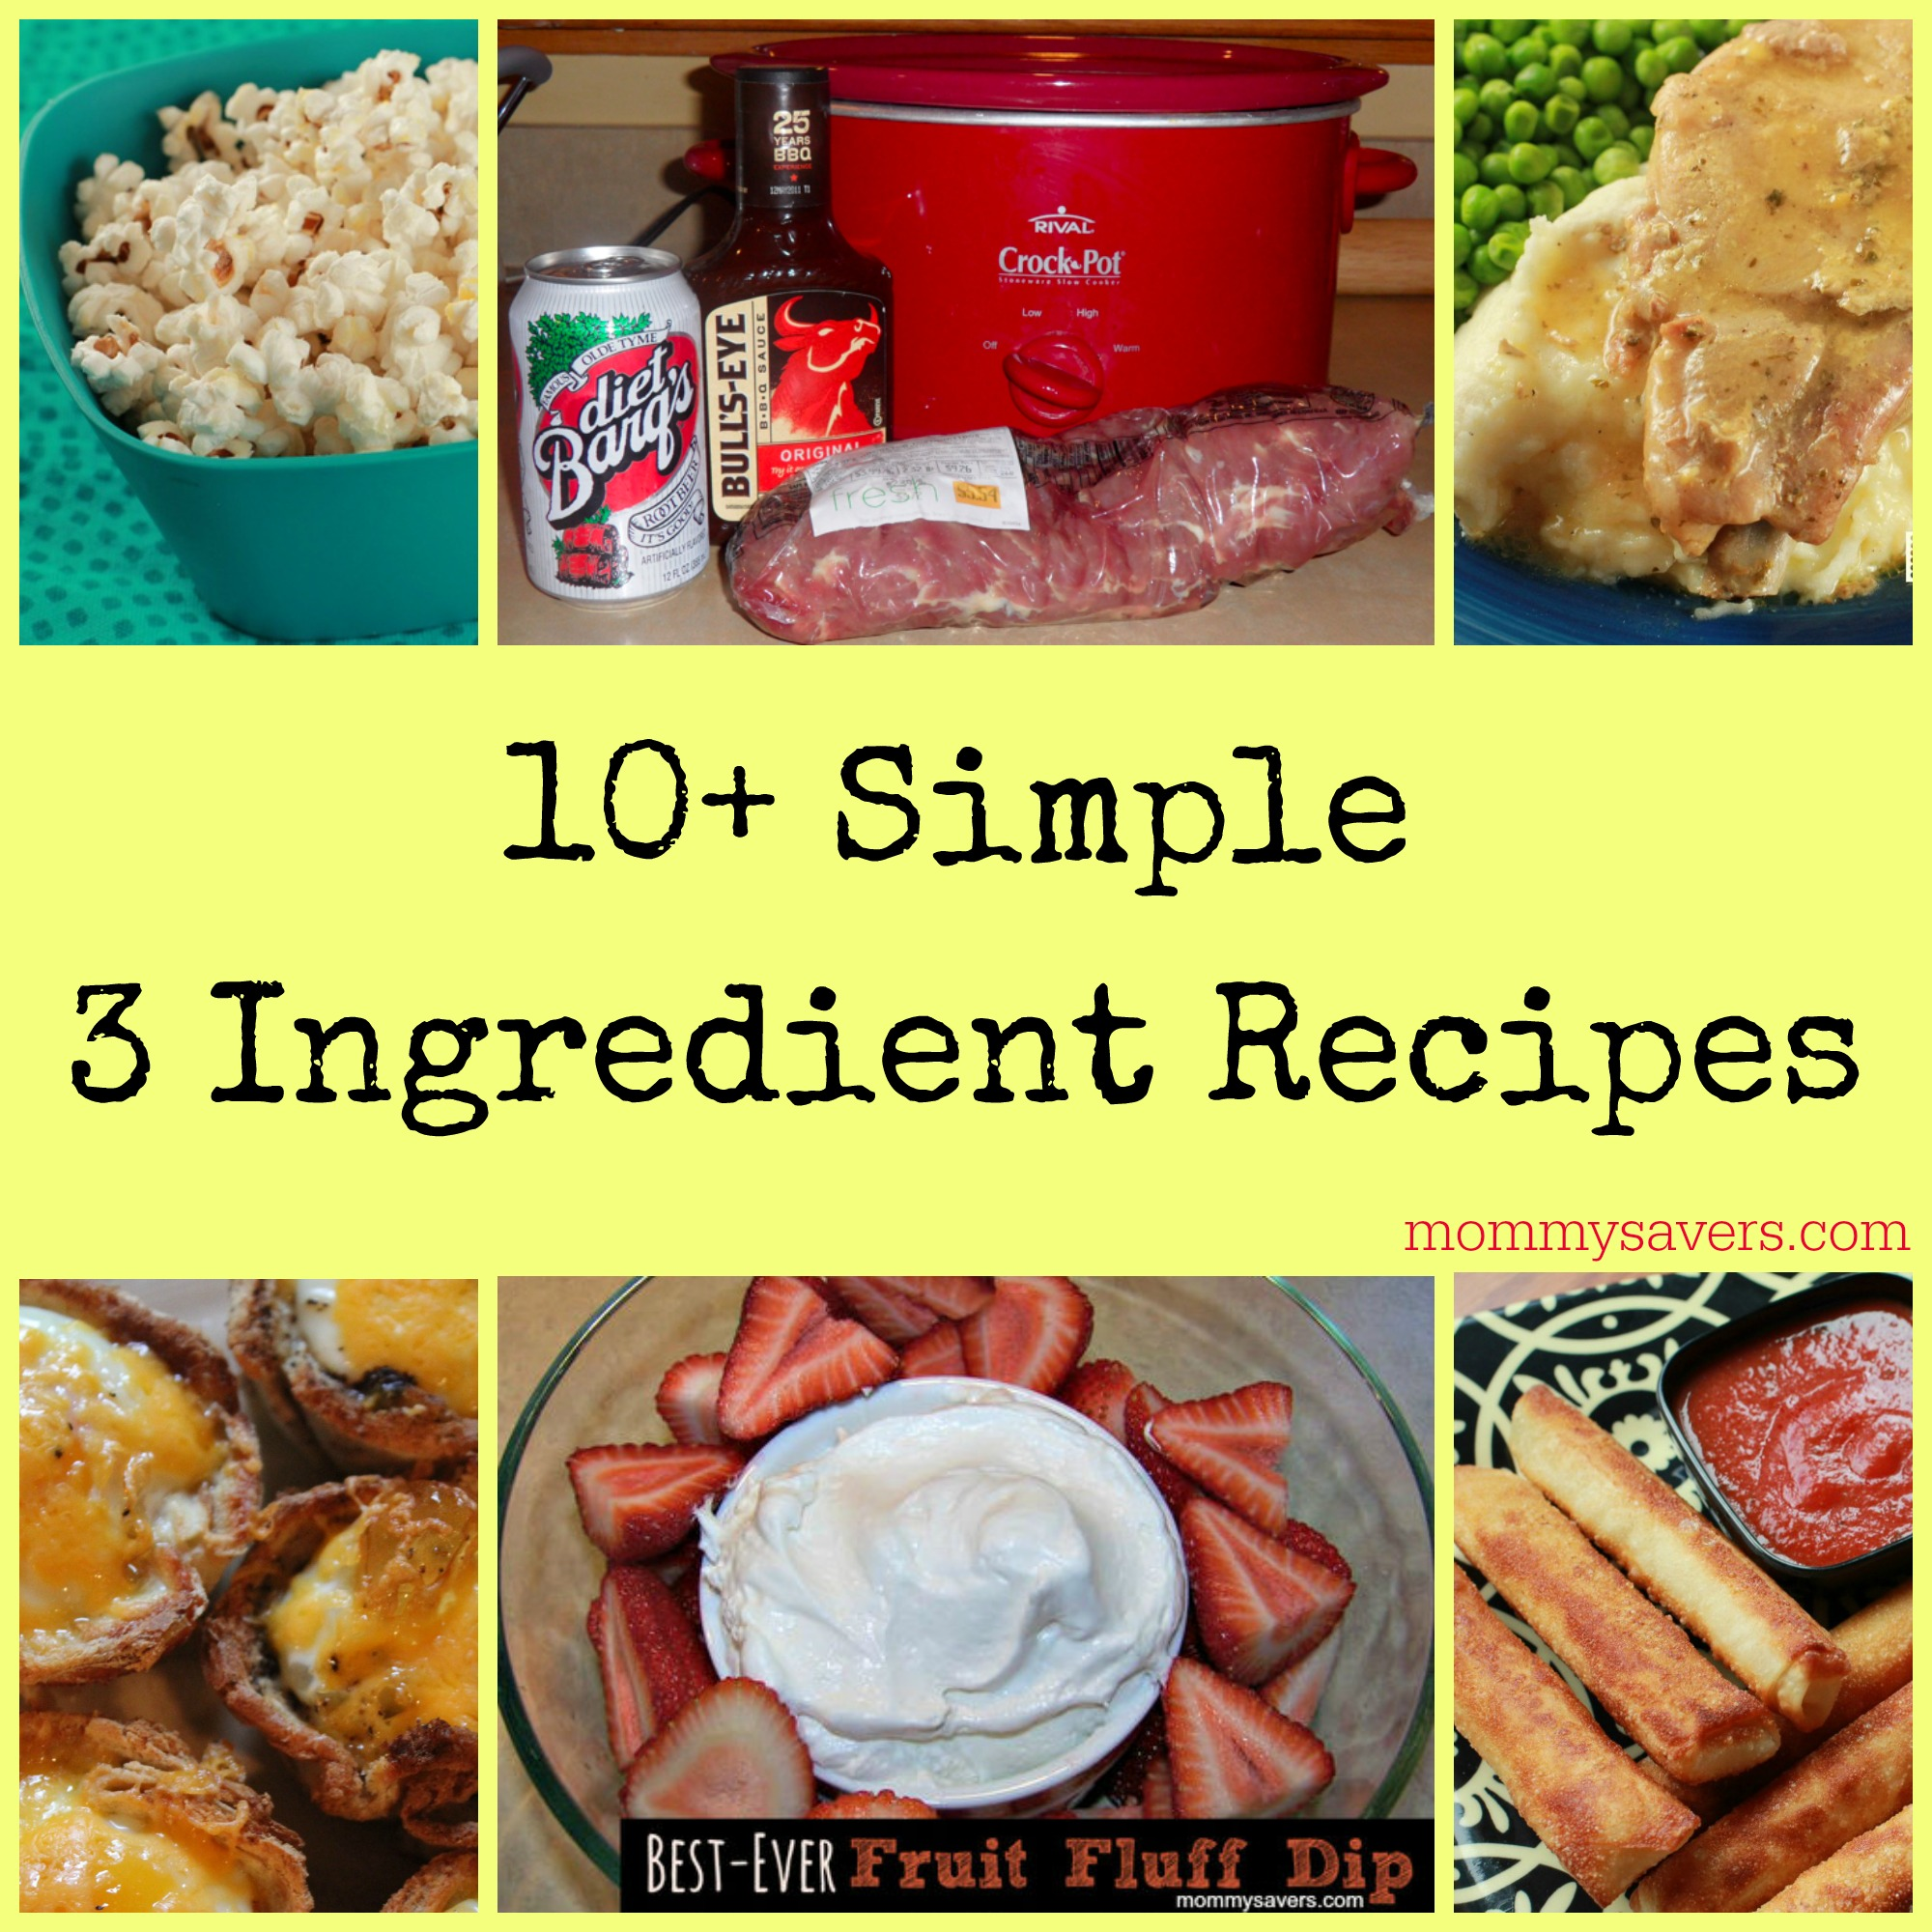 Simple 3 ingredient recipes mommysavers mommysavers simple 3 ingredient recipes forumfinder Image collections